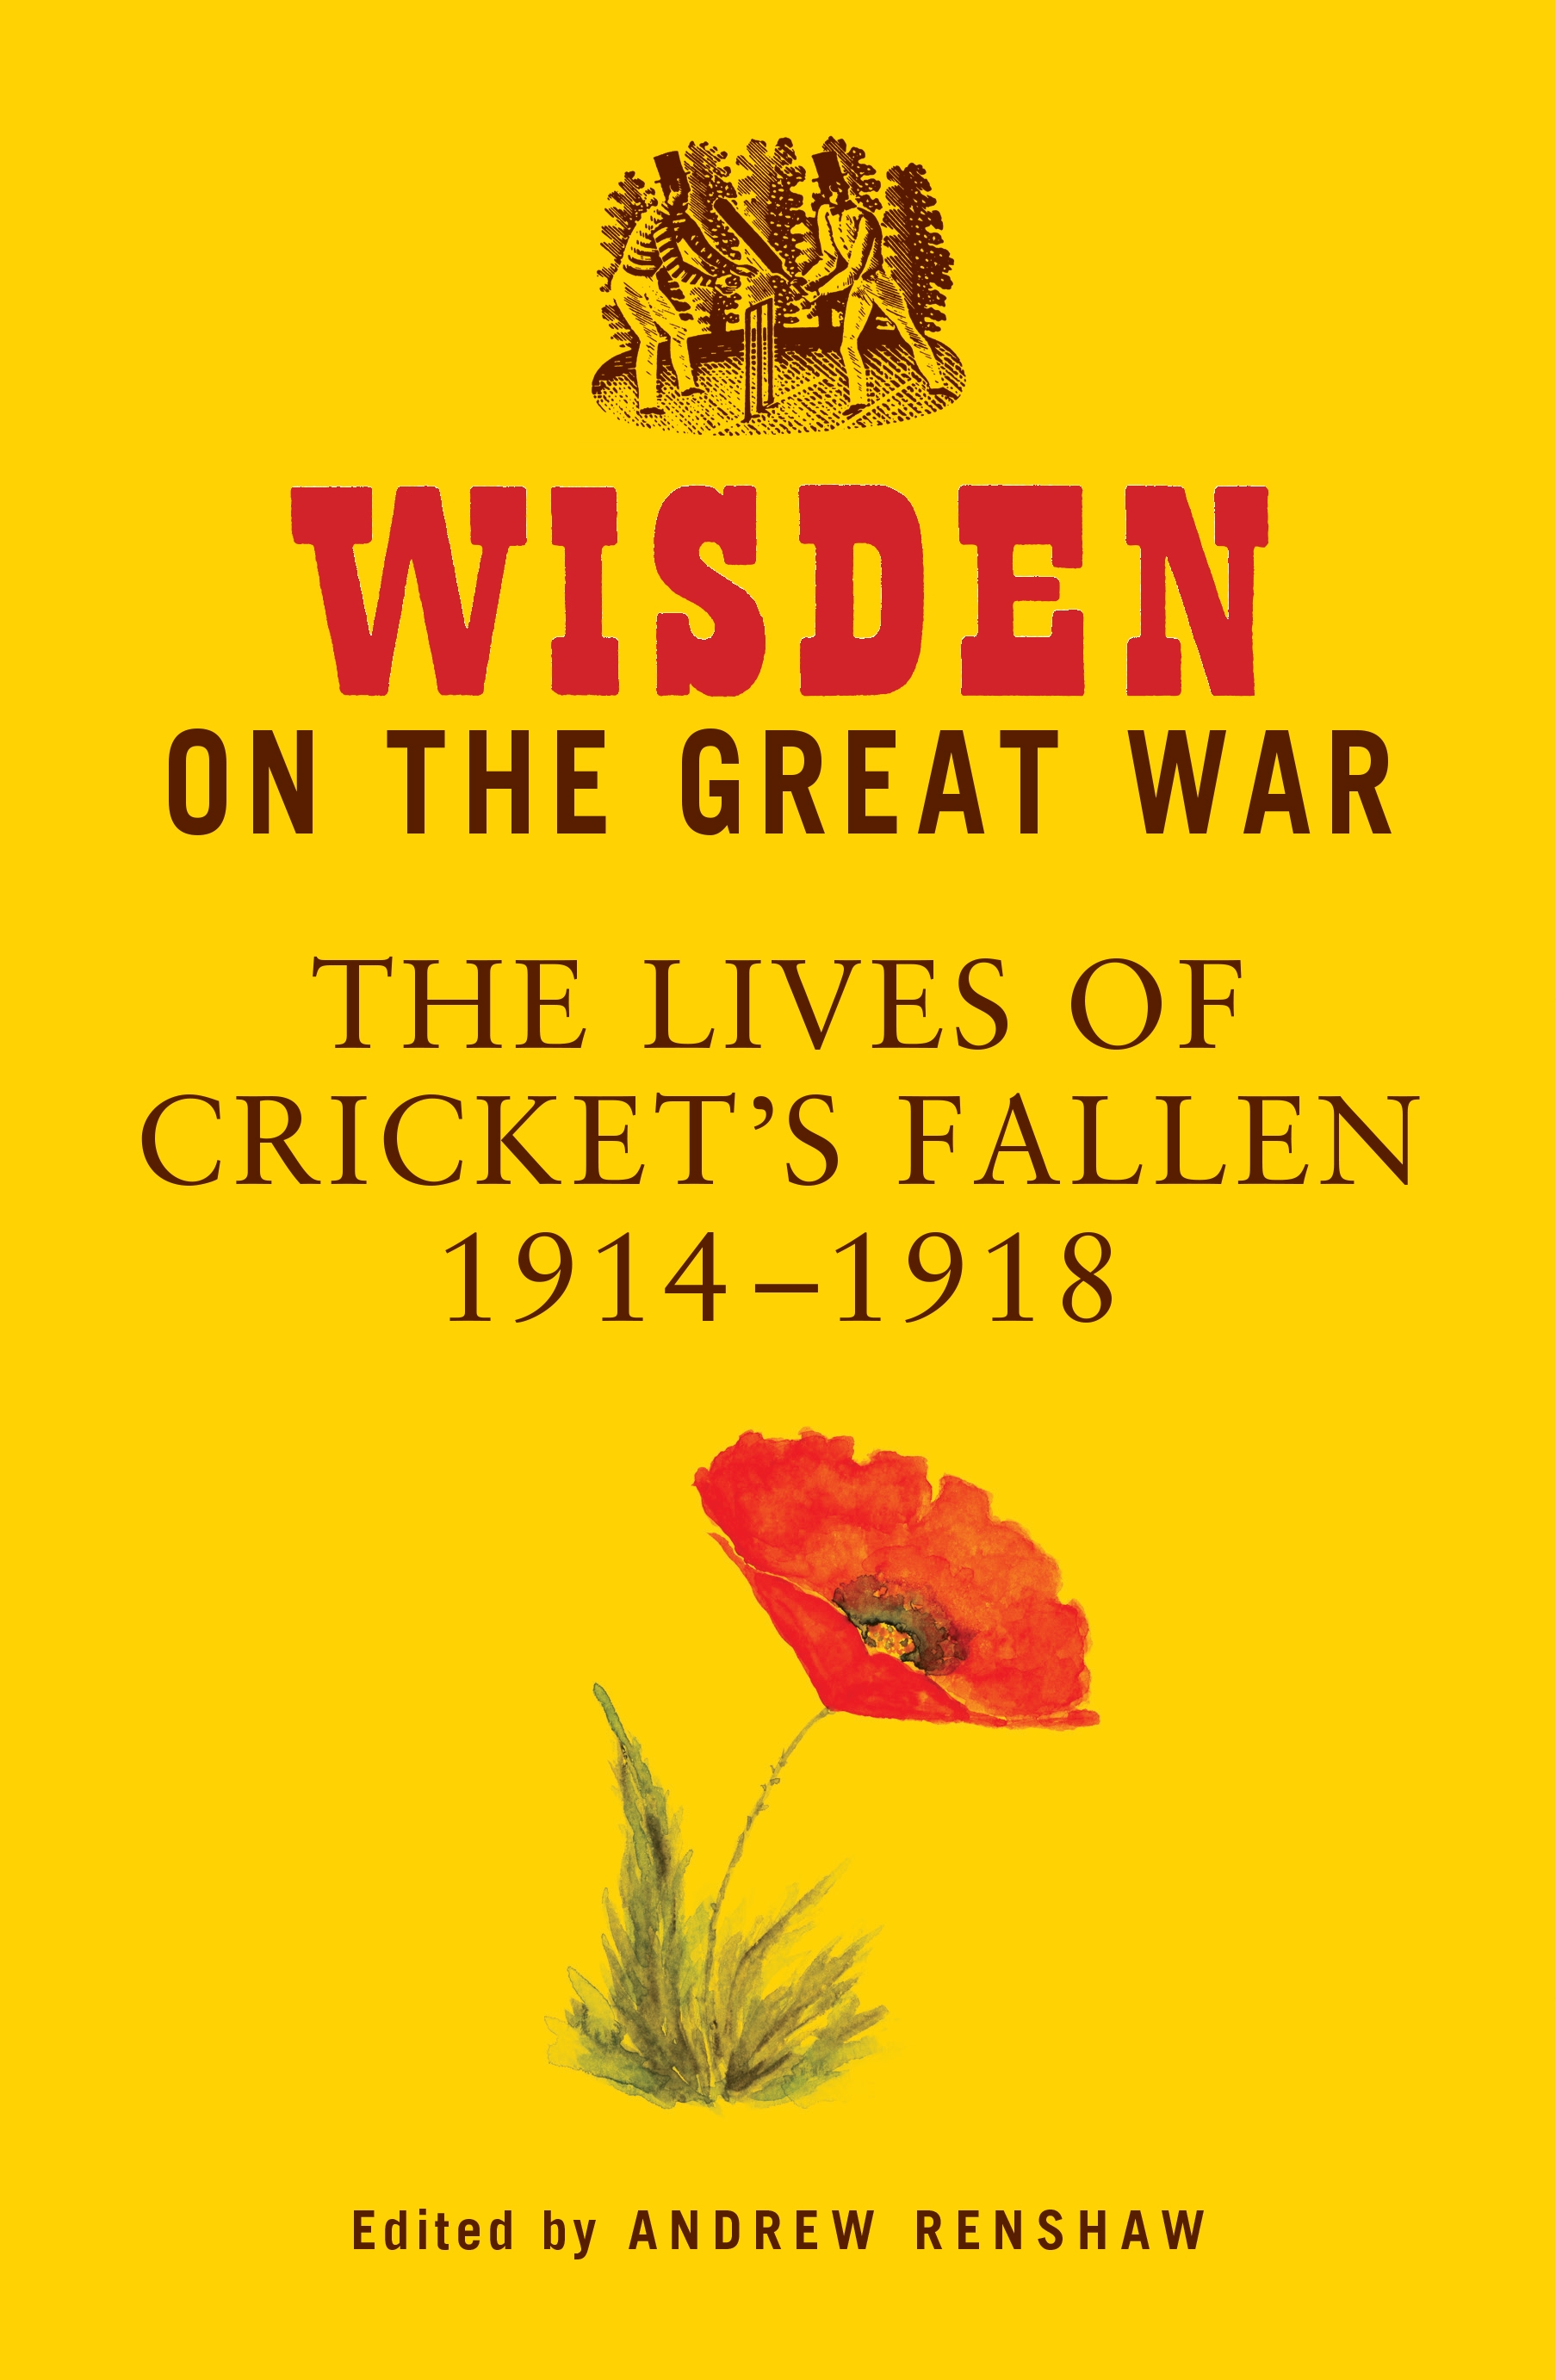 Wisden on the Great War The Lives of Cricket's Fallen 1914-1918